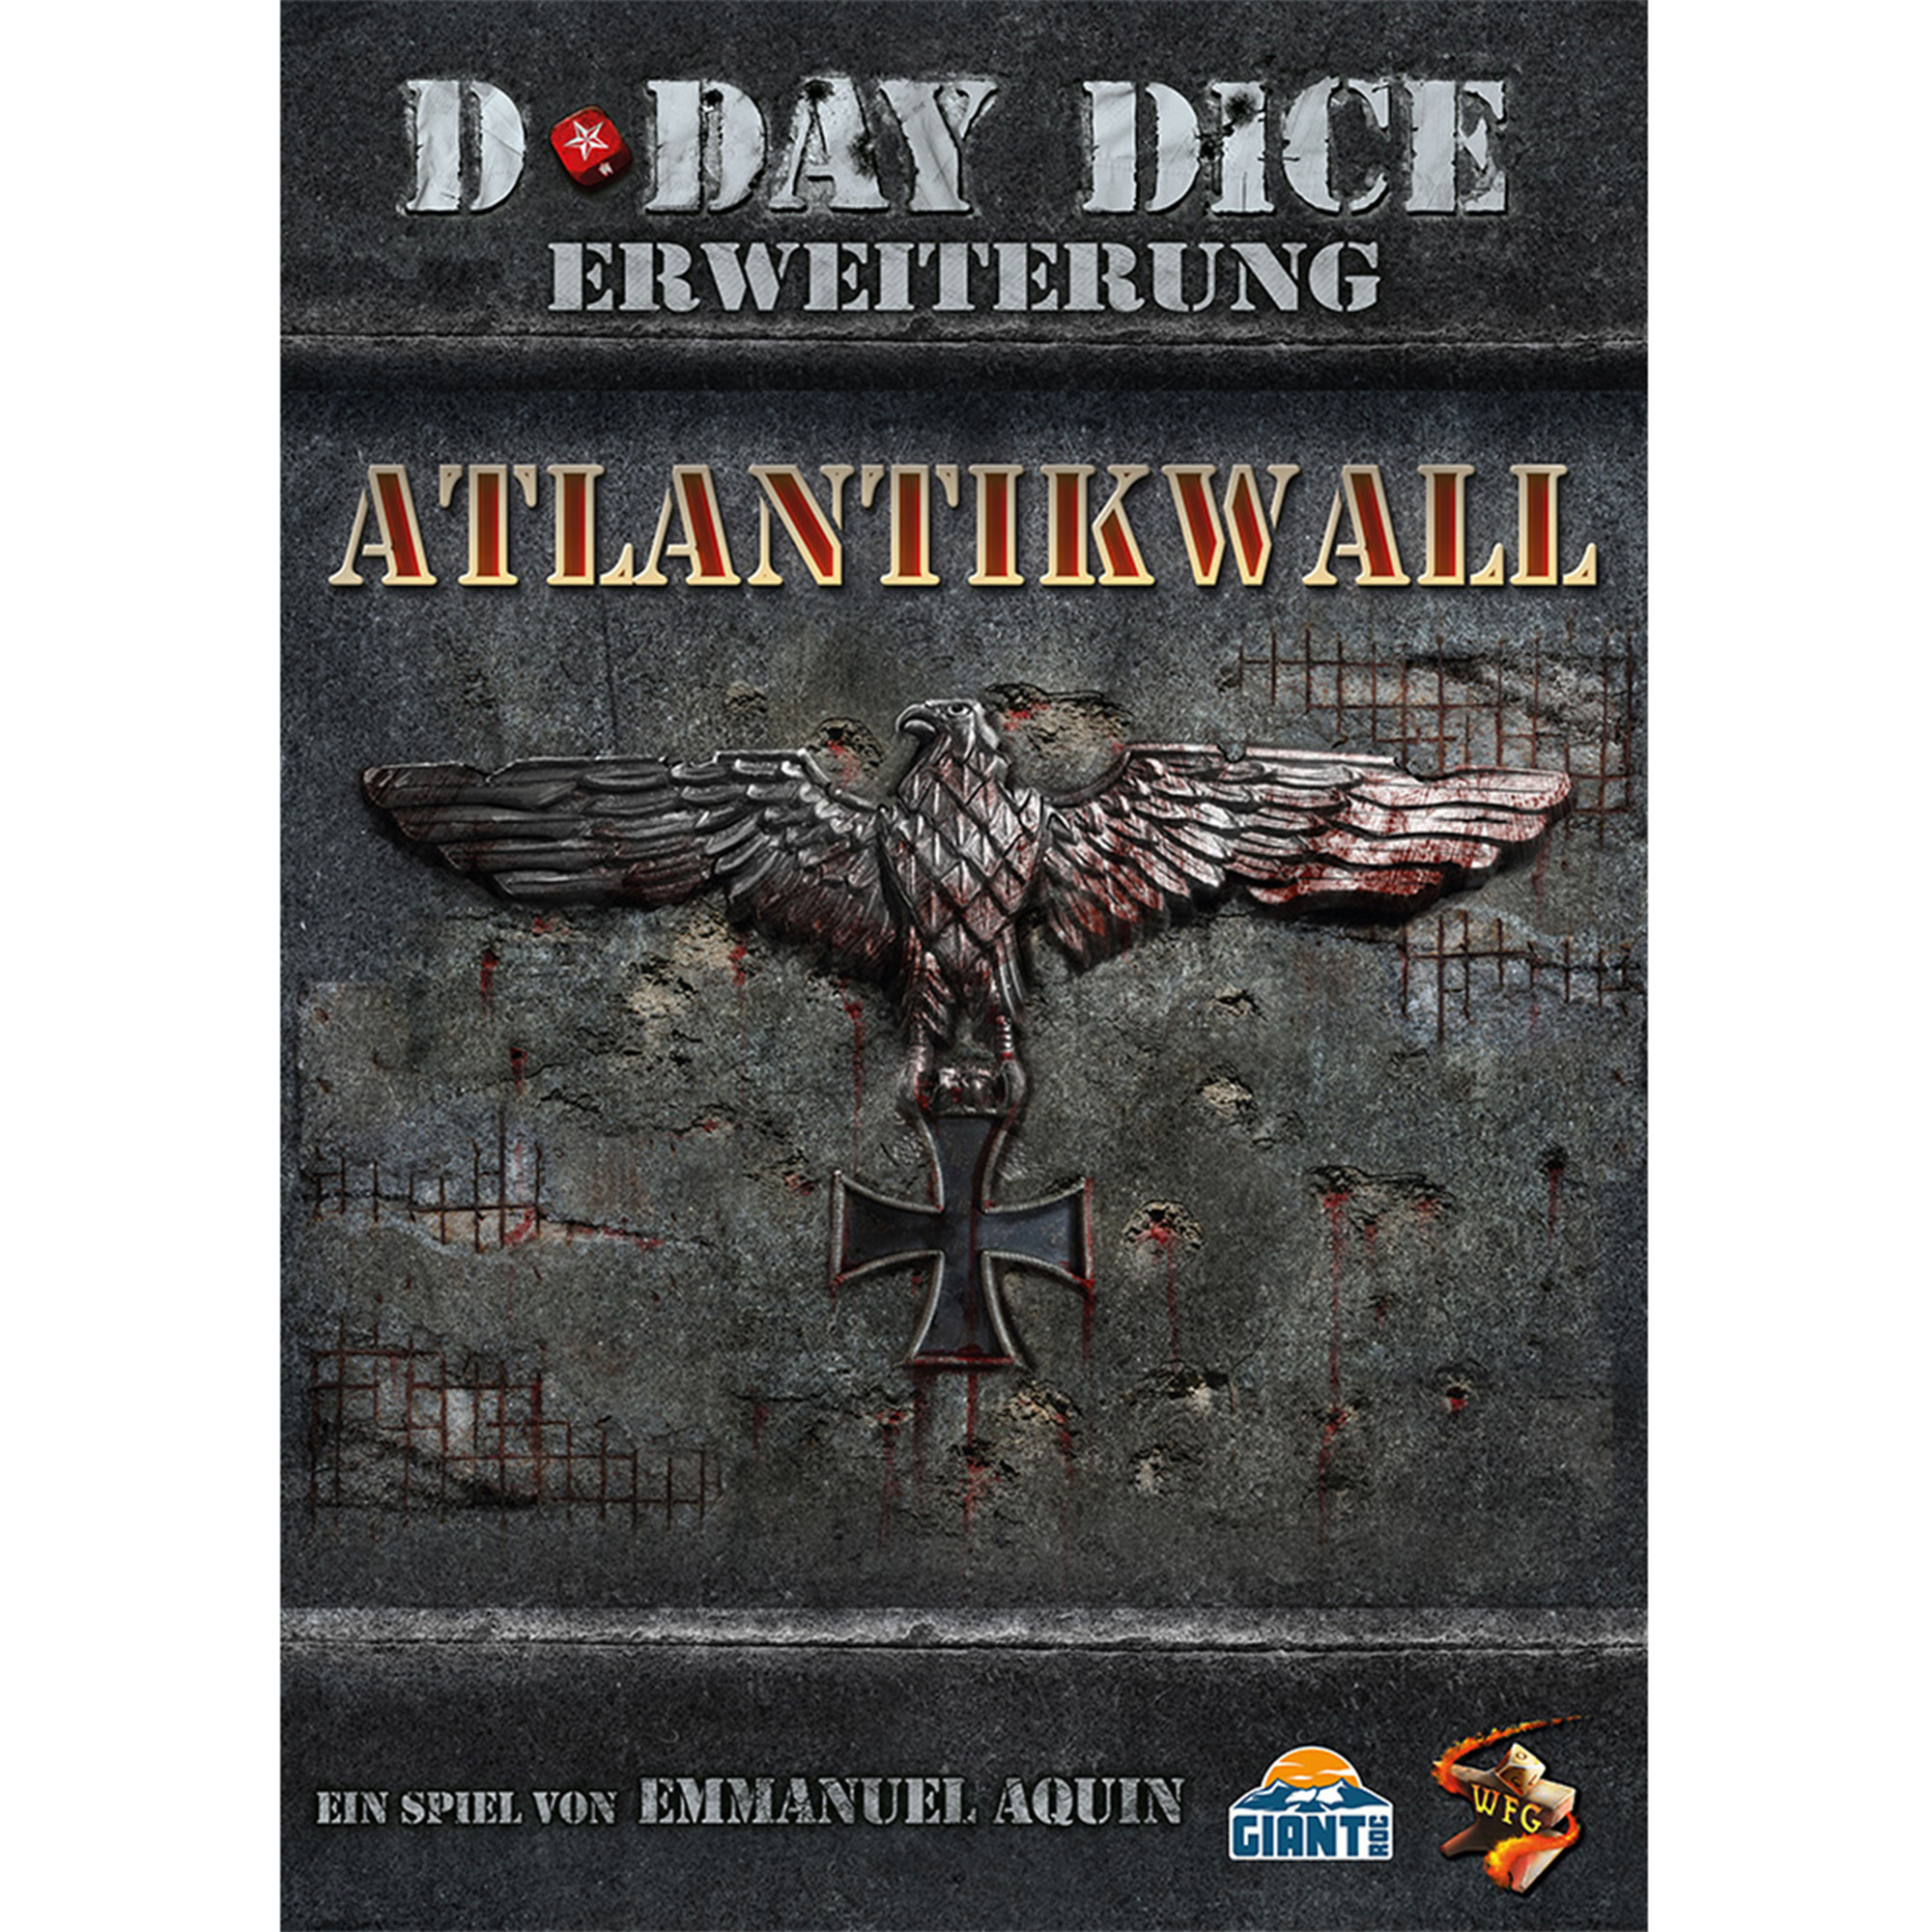 D-Day Dice 2nd Edition - Atlantikwall Erweiterung